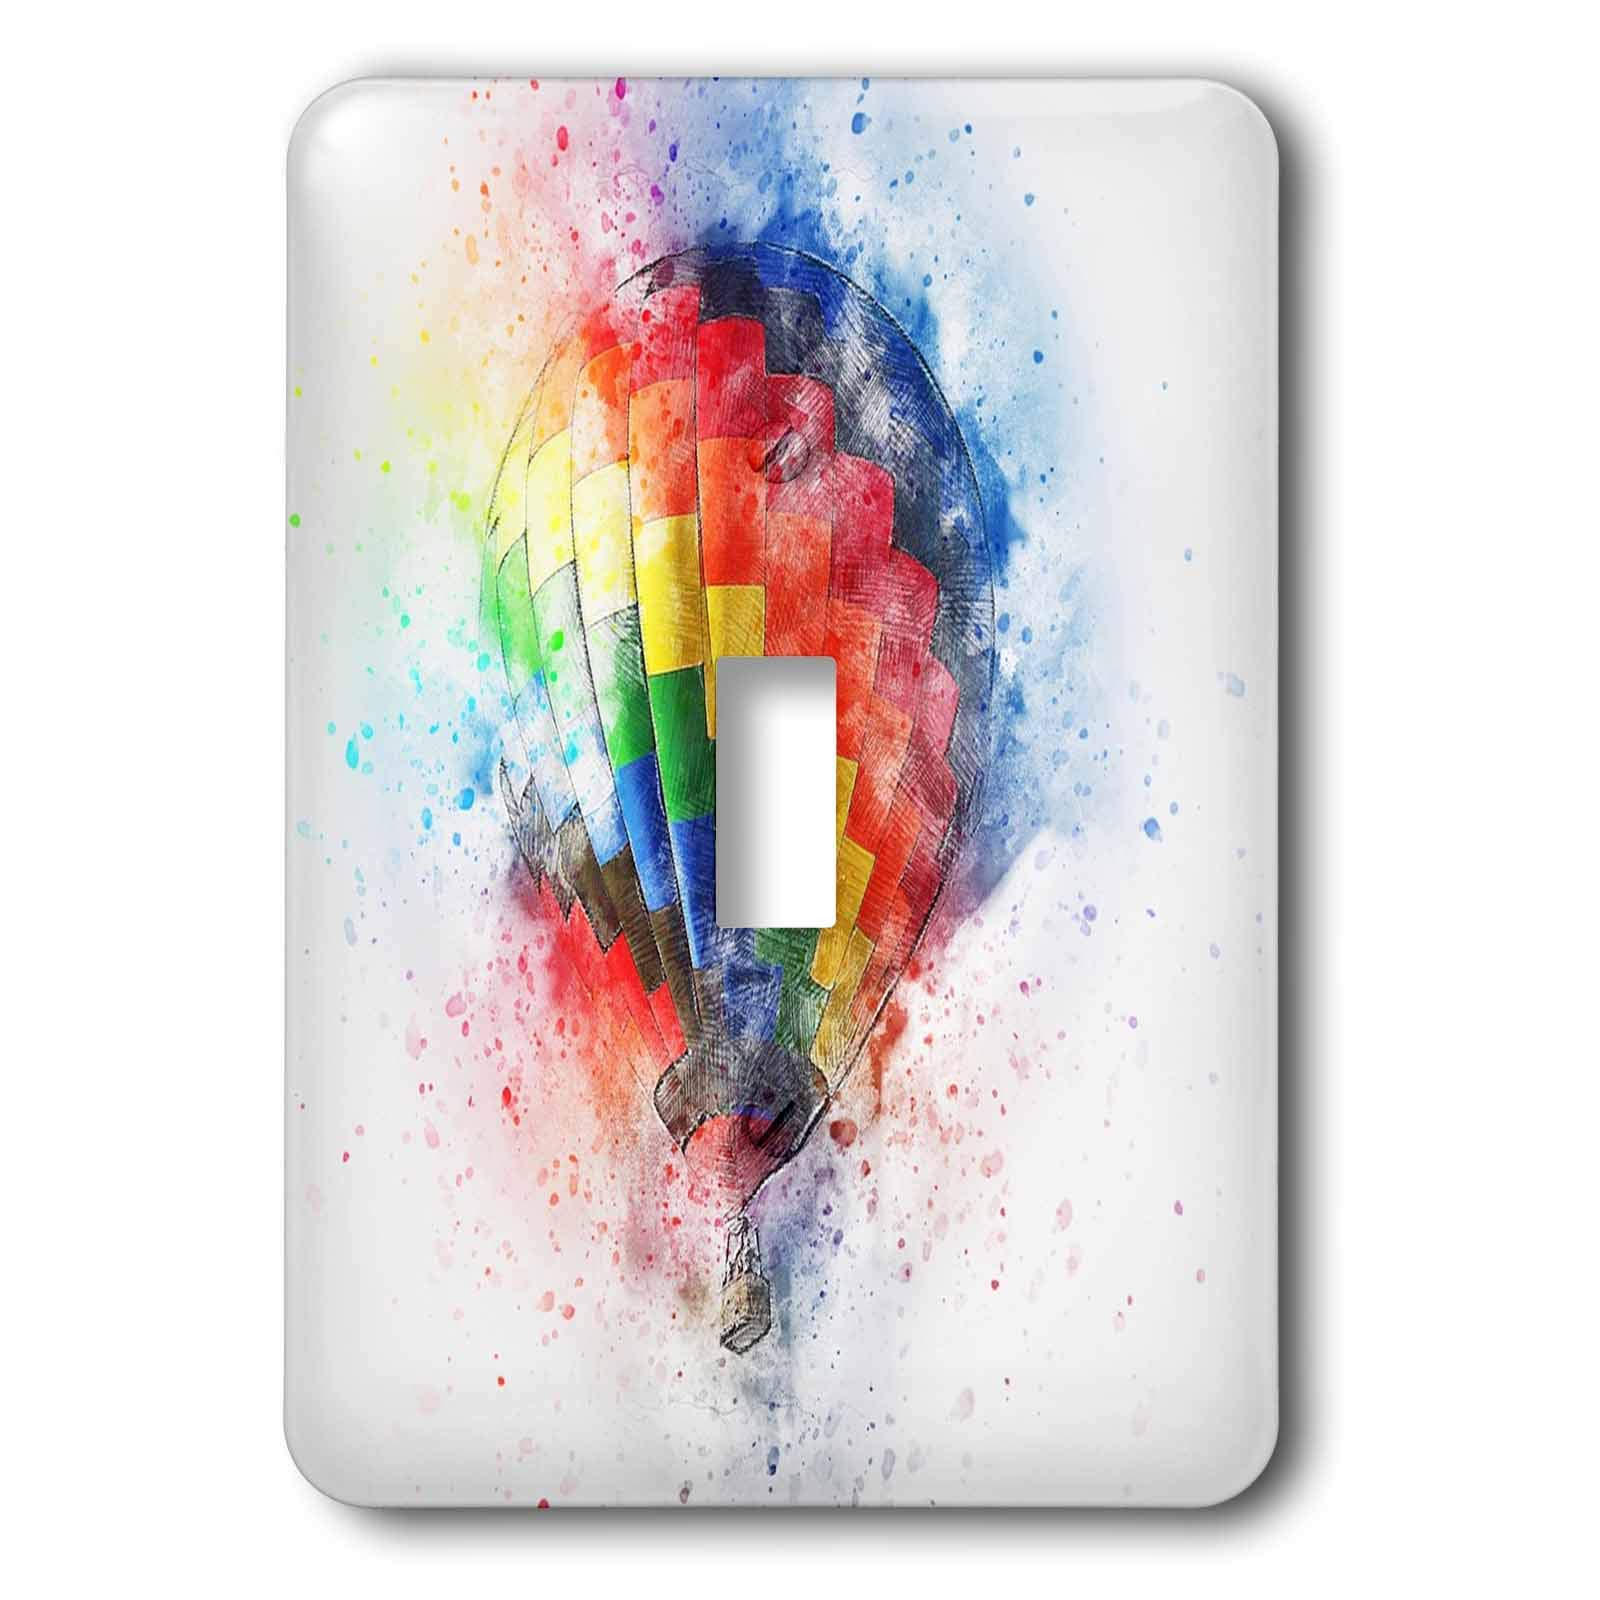 3dRose Lens Art by Florene - Watercolor Art - Image of Pretty Painting of Colorful Hot Air Baloon - Light Switch Covers - single toggle switch (lsp_290980_1)